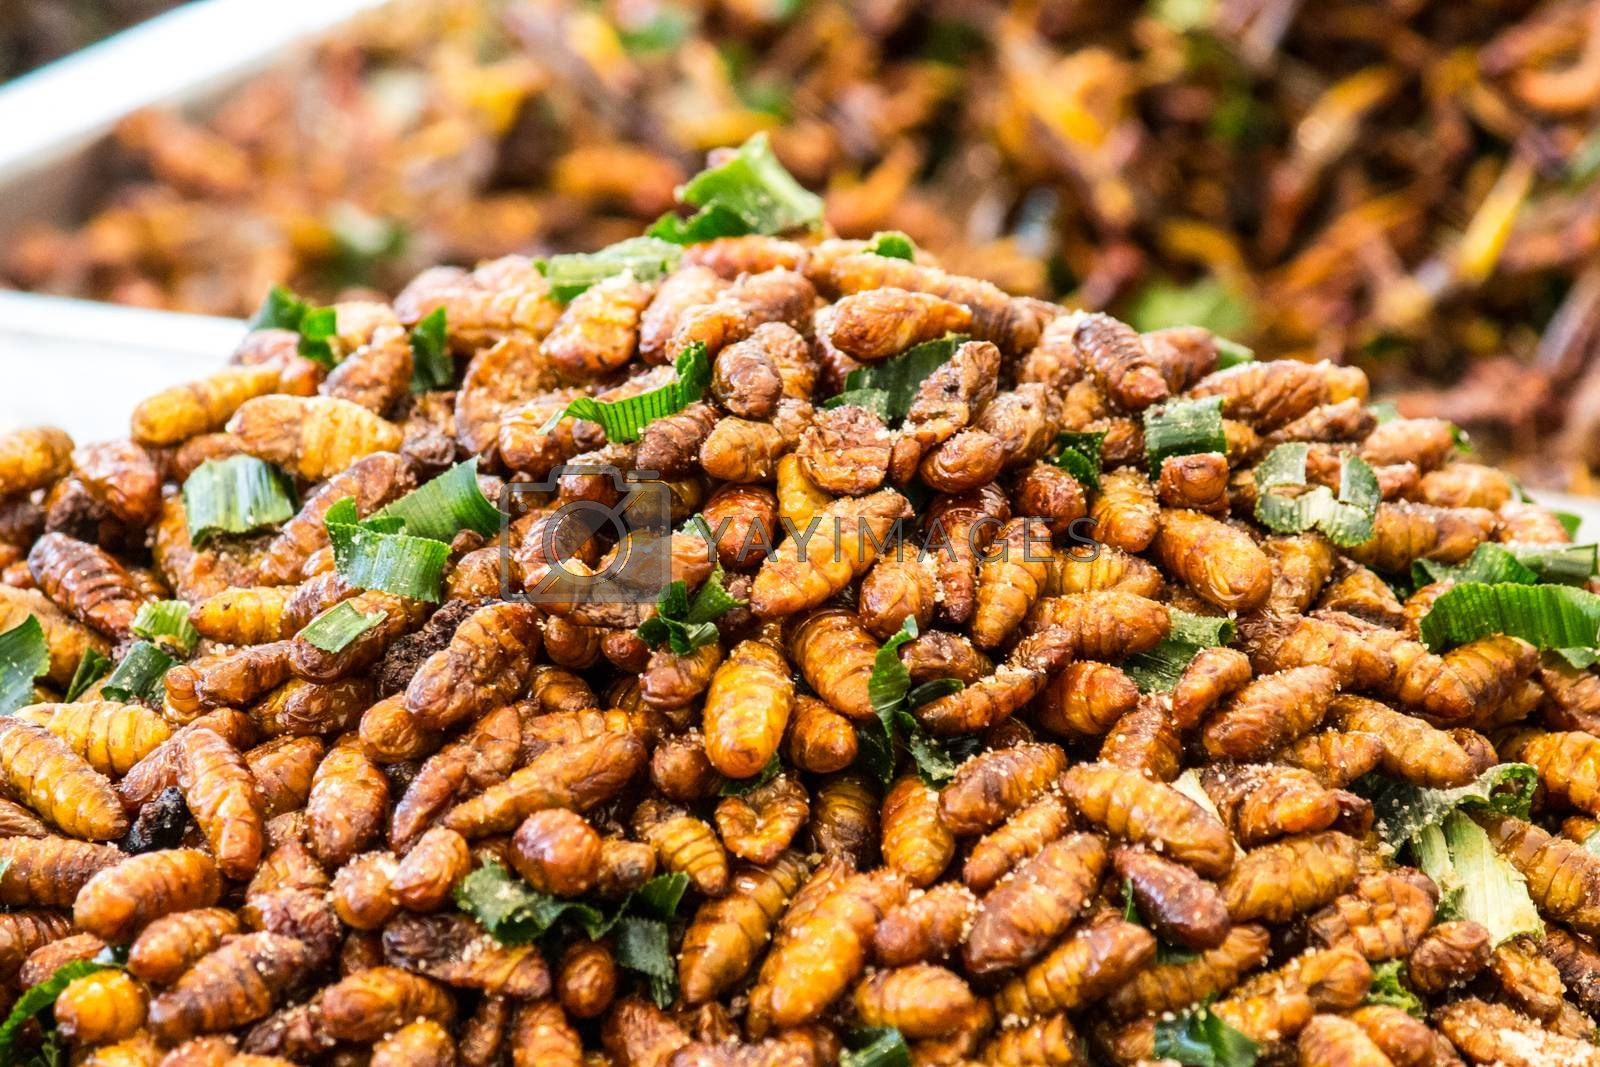 This is an insect fried foods that are high protein and very delicious